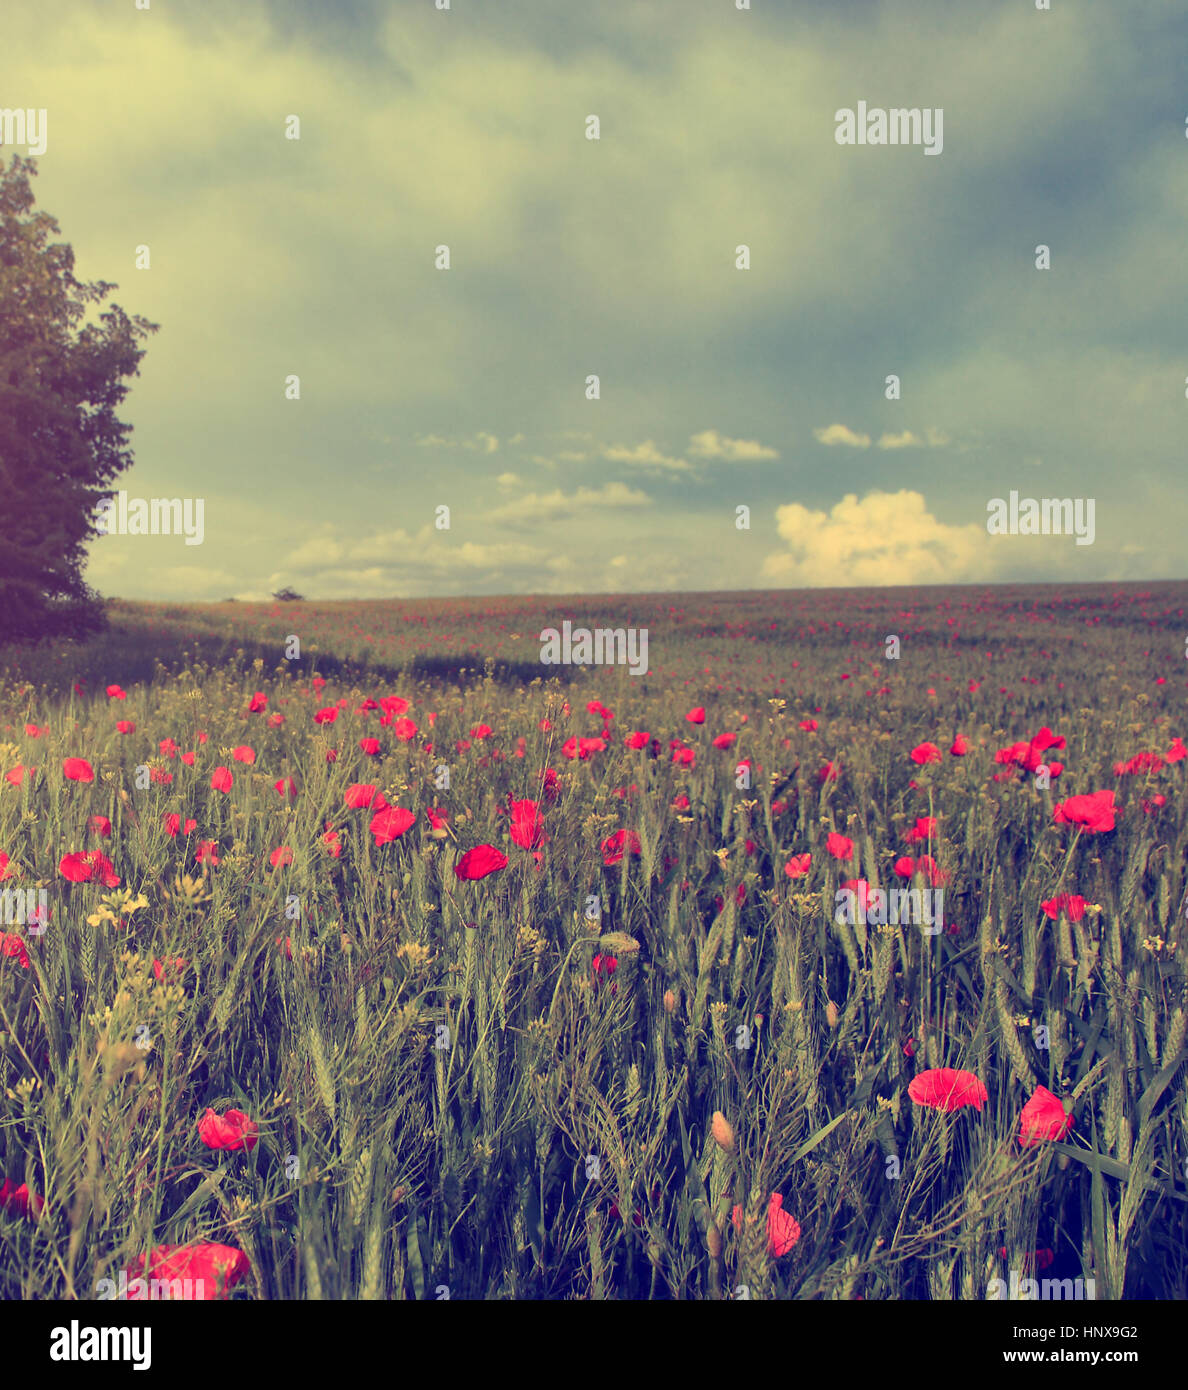 Vintage photo of poppy field in sunset - Stock Image